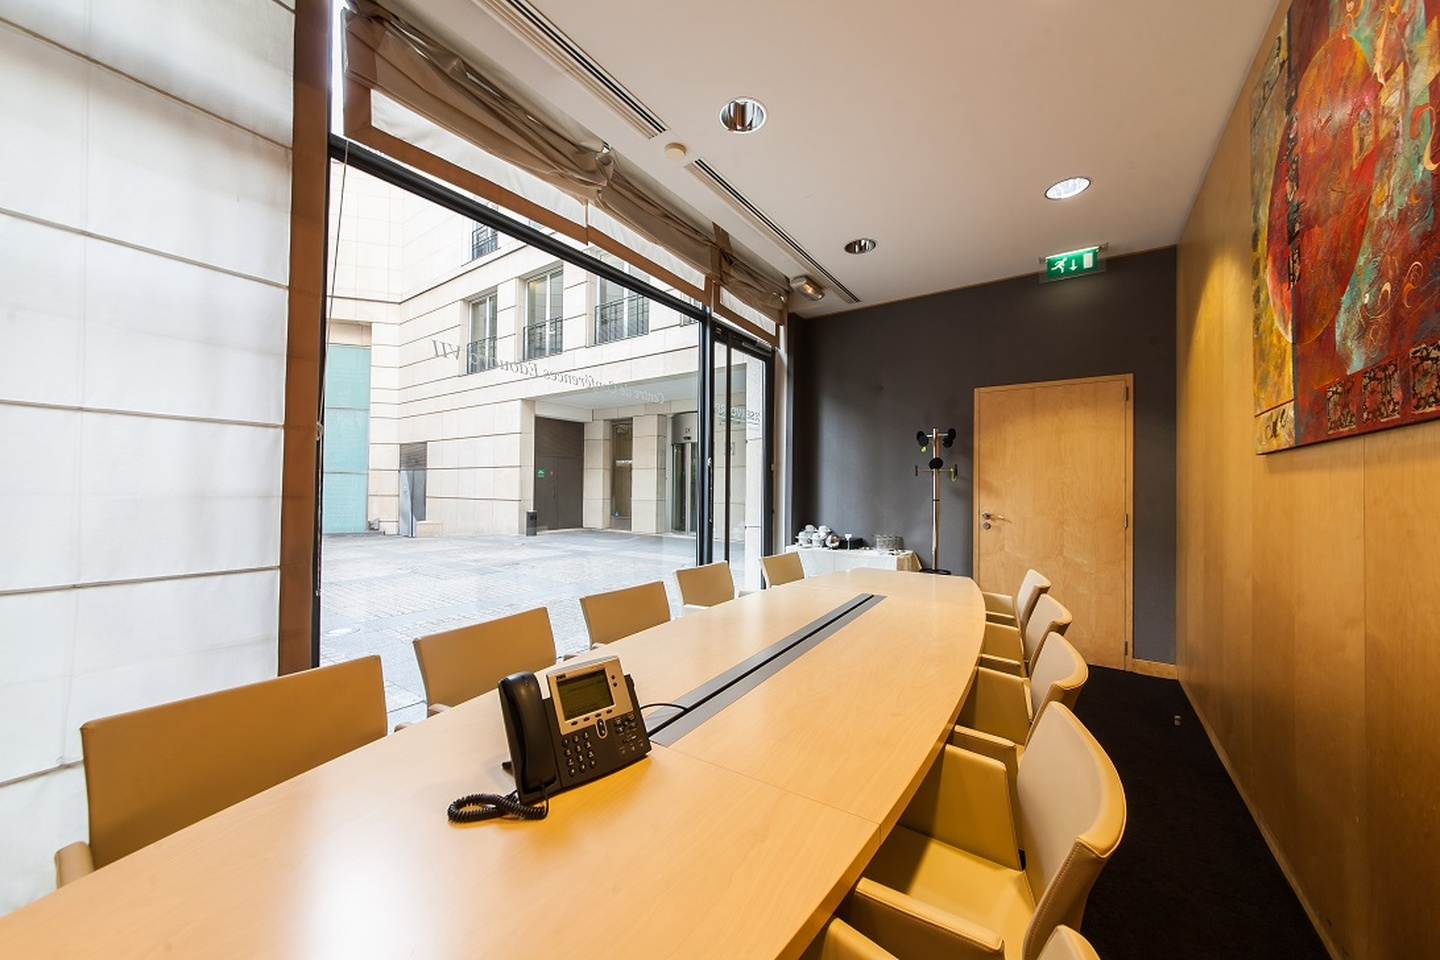 Paris corporate event venues Meeting room SERVCORP - Edouard VII Conference Center - Singapore Boardroom image 1